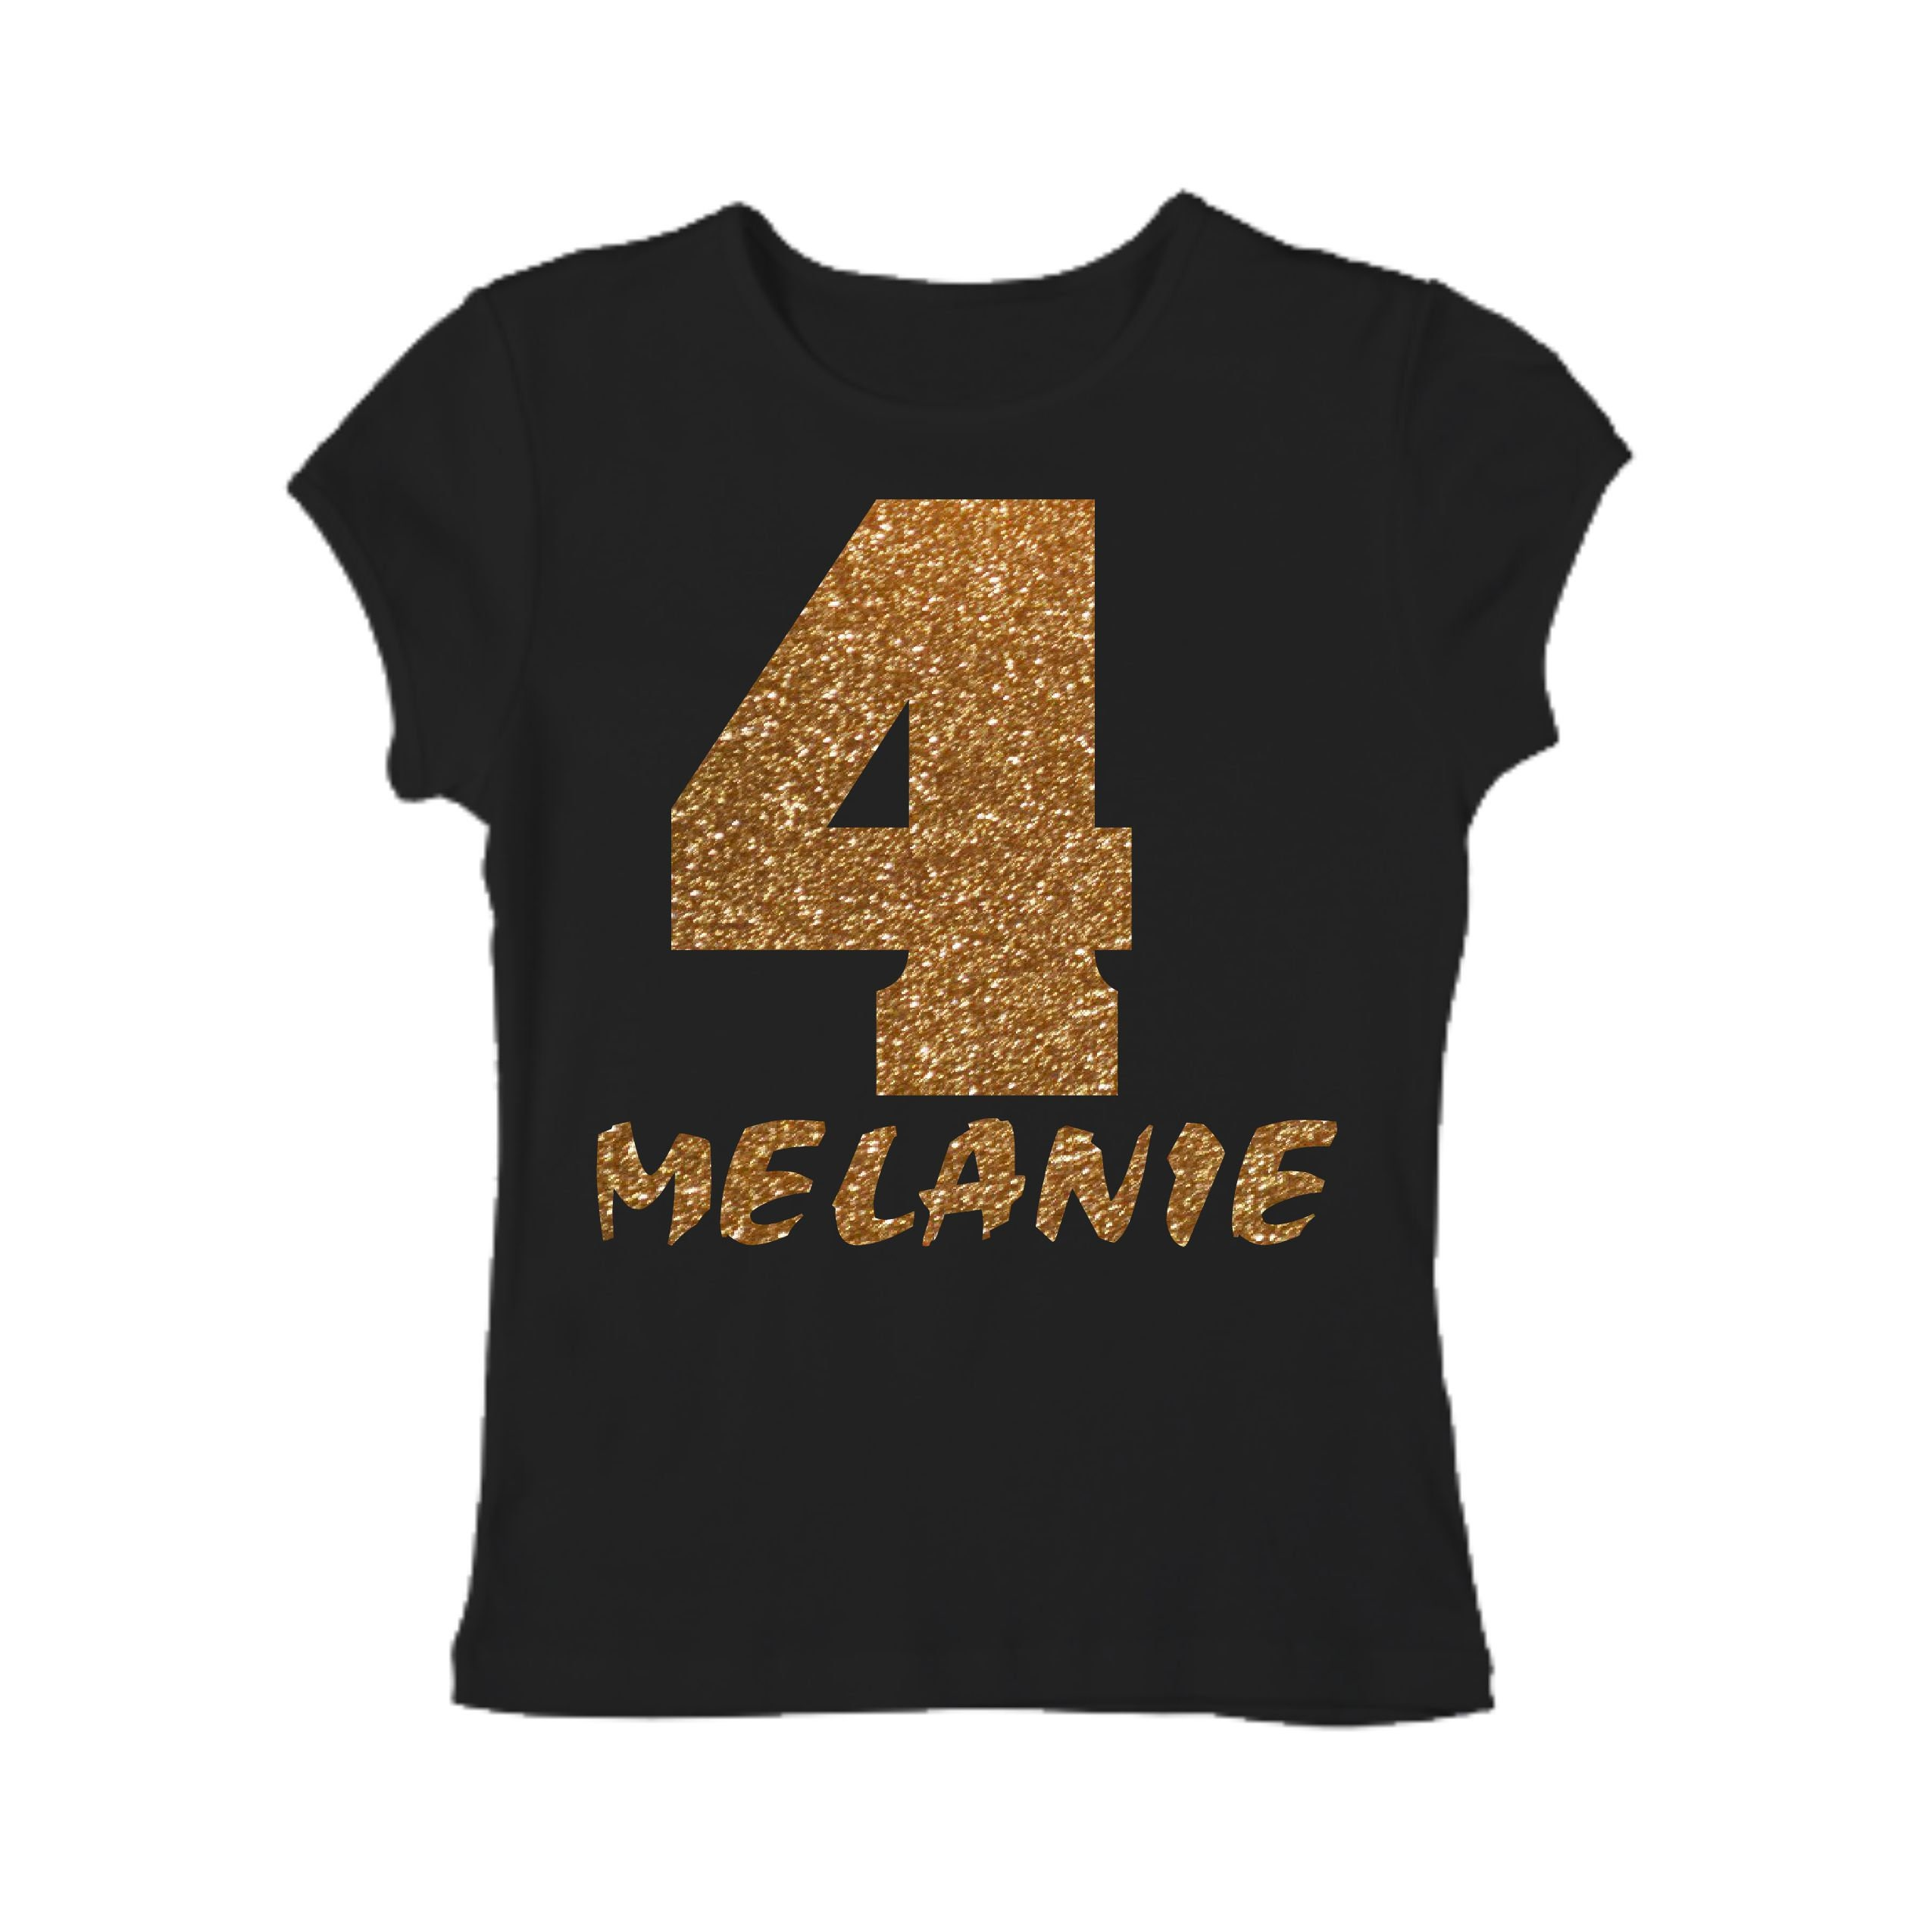 Girls Gold Glitter Birthday Tshirt Shirt Customized Number Shirts Youth 4t 5t 6 7 8 T